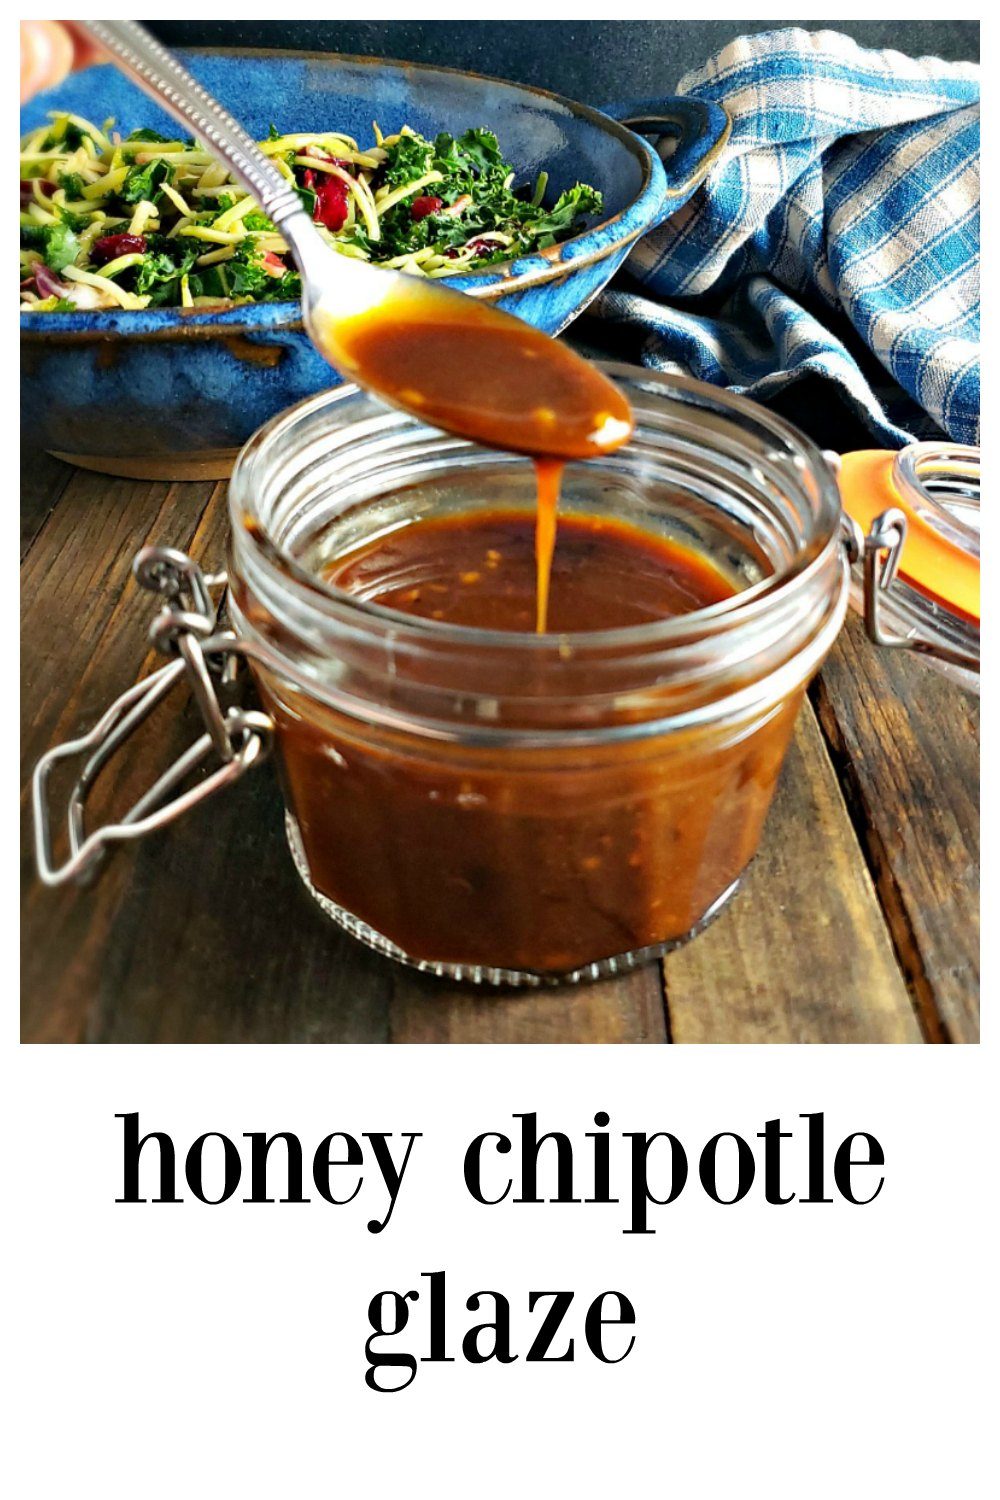 Honey Chipotle Glaze is simply transformative! Think of it like a rich, smoky barbecue type sauce with the smooth umami of Asia & the spice of Mexico! This literally takes 3 minutes to make. It's a Miracle! #HoneyChipotleGlaze #ChipotleGlaze #ChipotleBarbecueSauce #BBQSauce